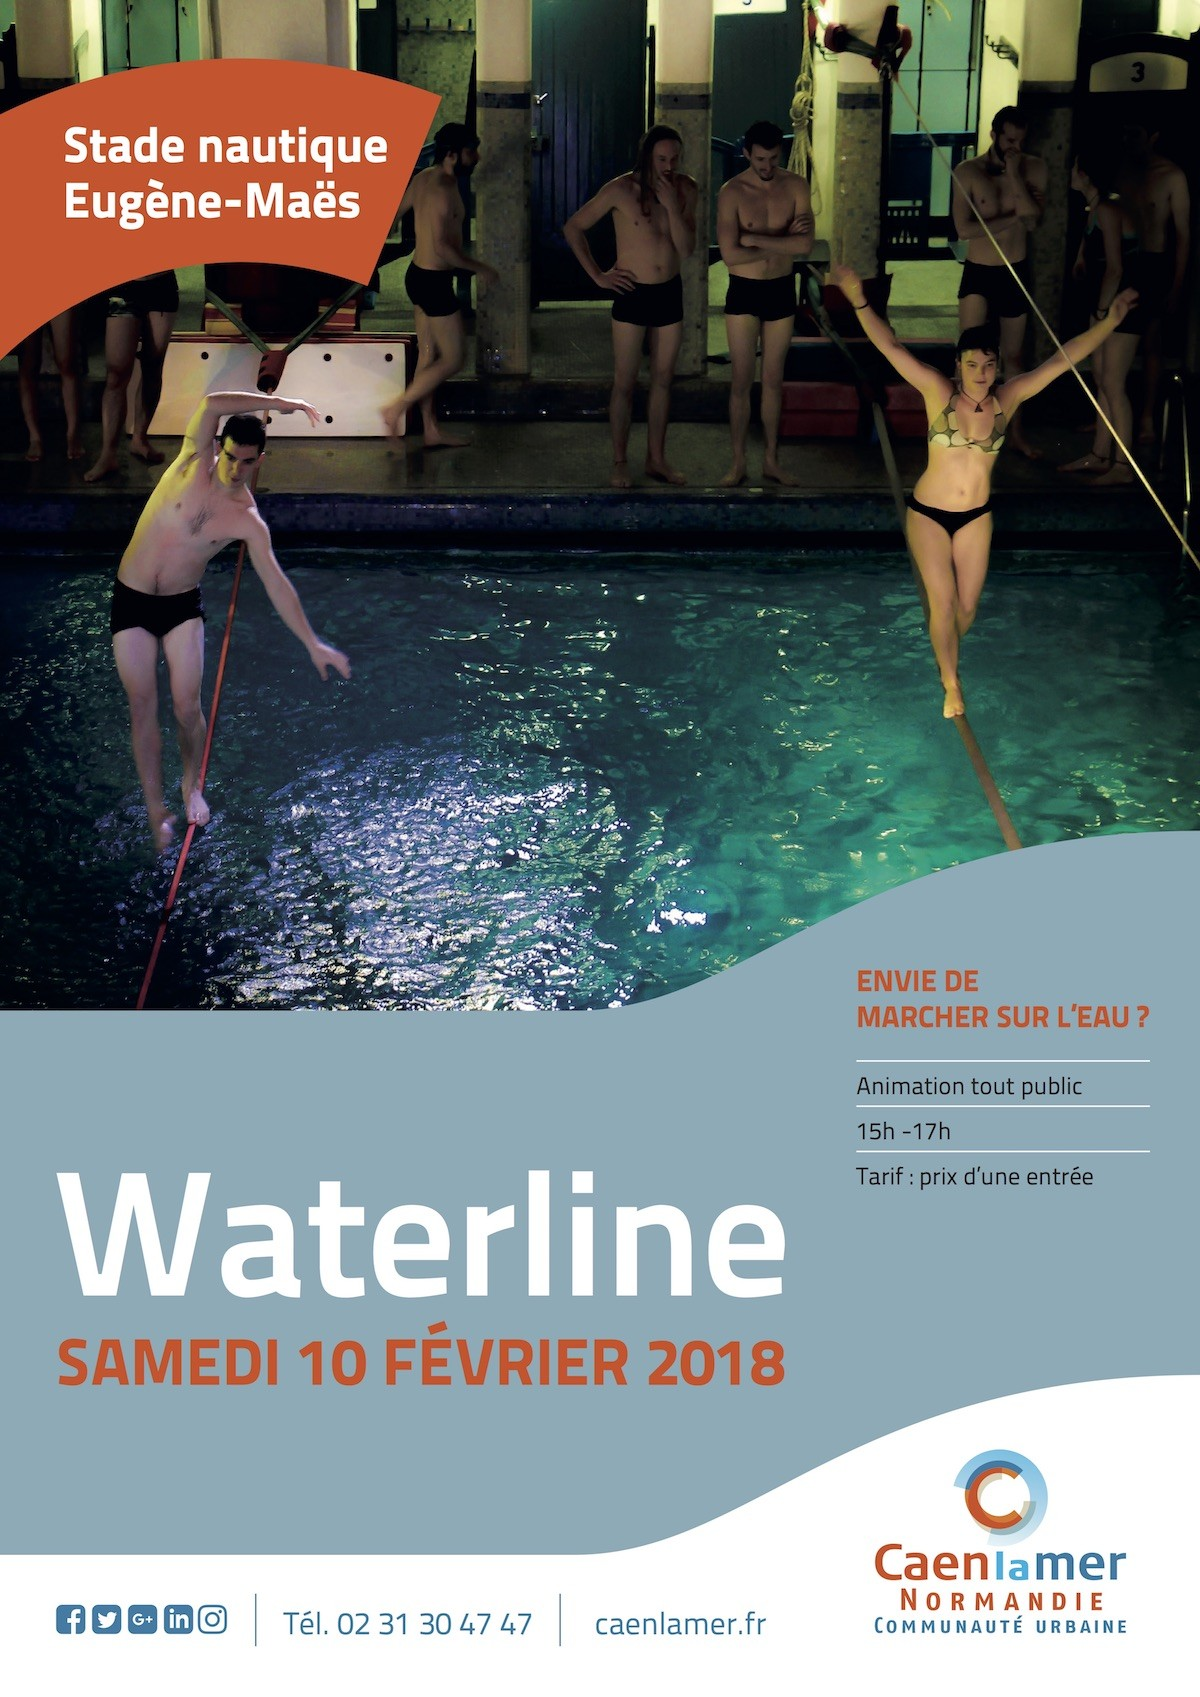 Waterline Stade nautique